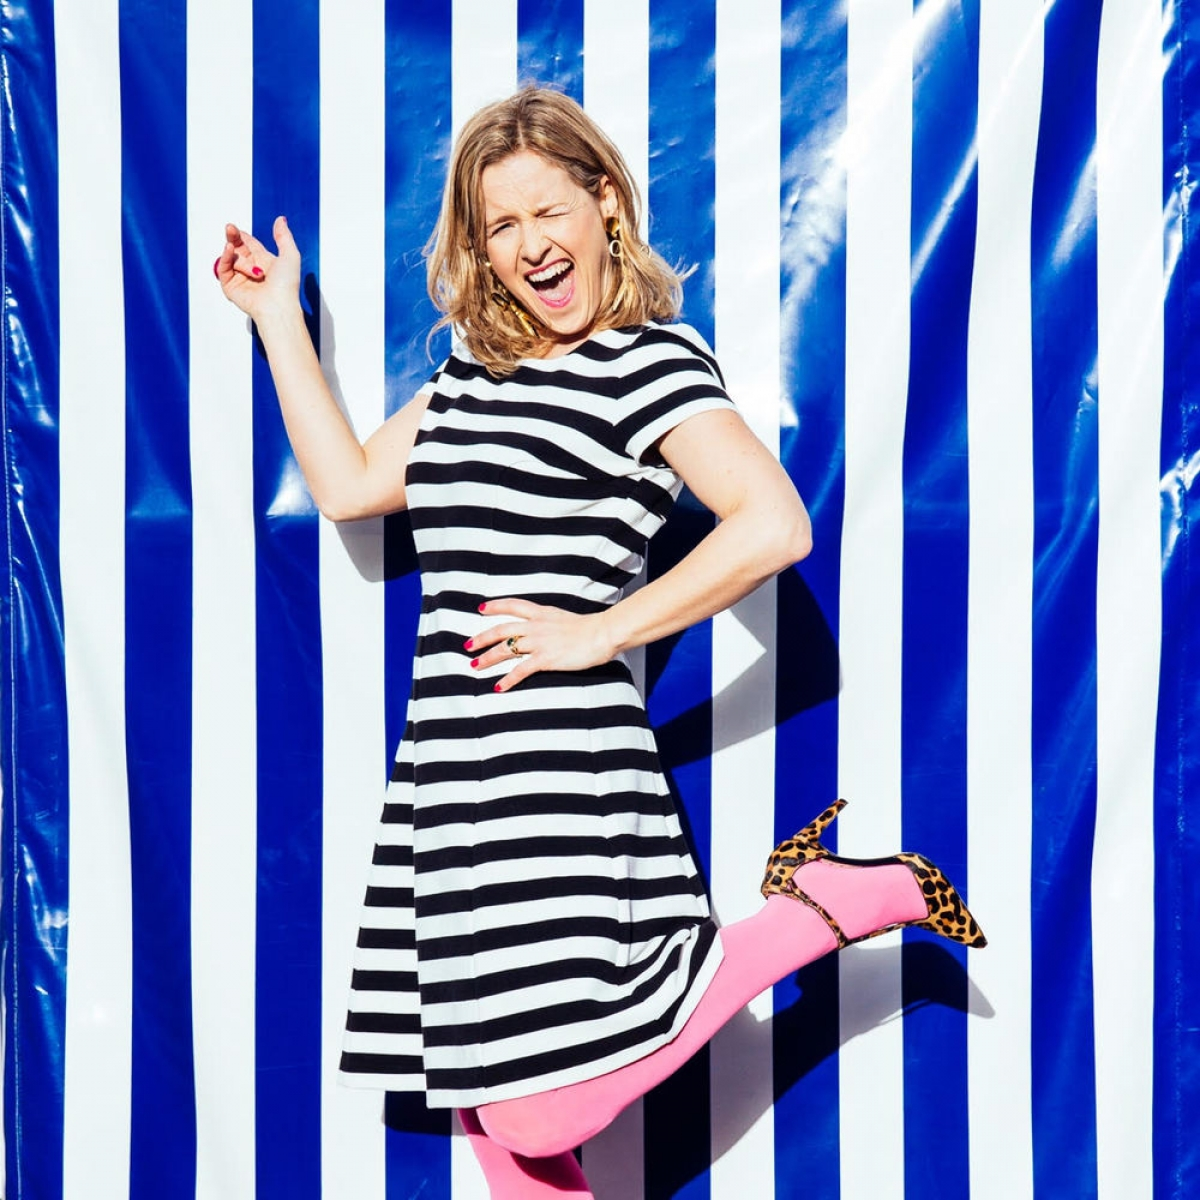 Interior designer Sophie robinson shares her interior design crimes. black and white striped dress, neon pink tights and leopard print heels